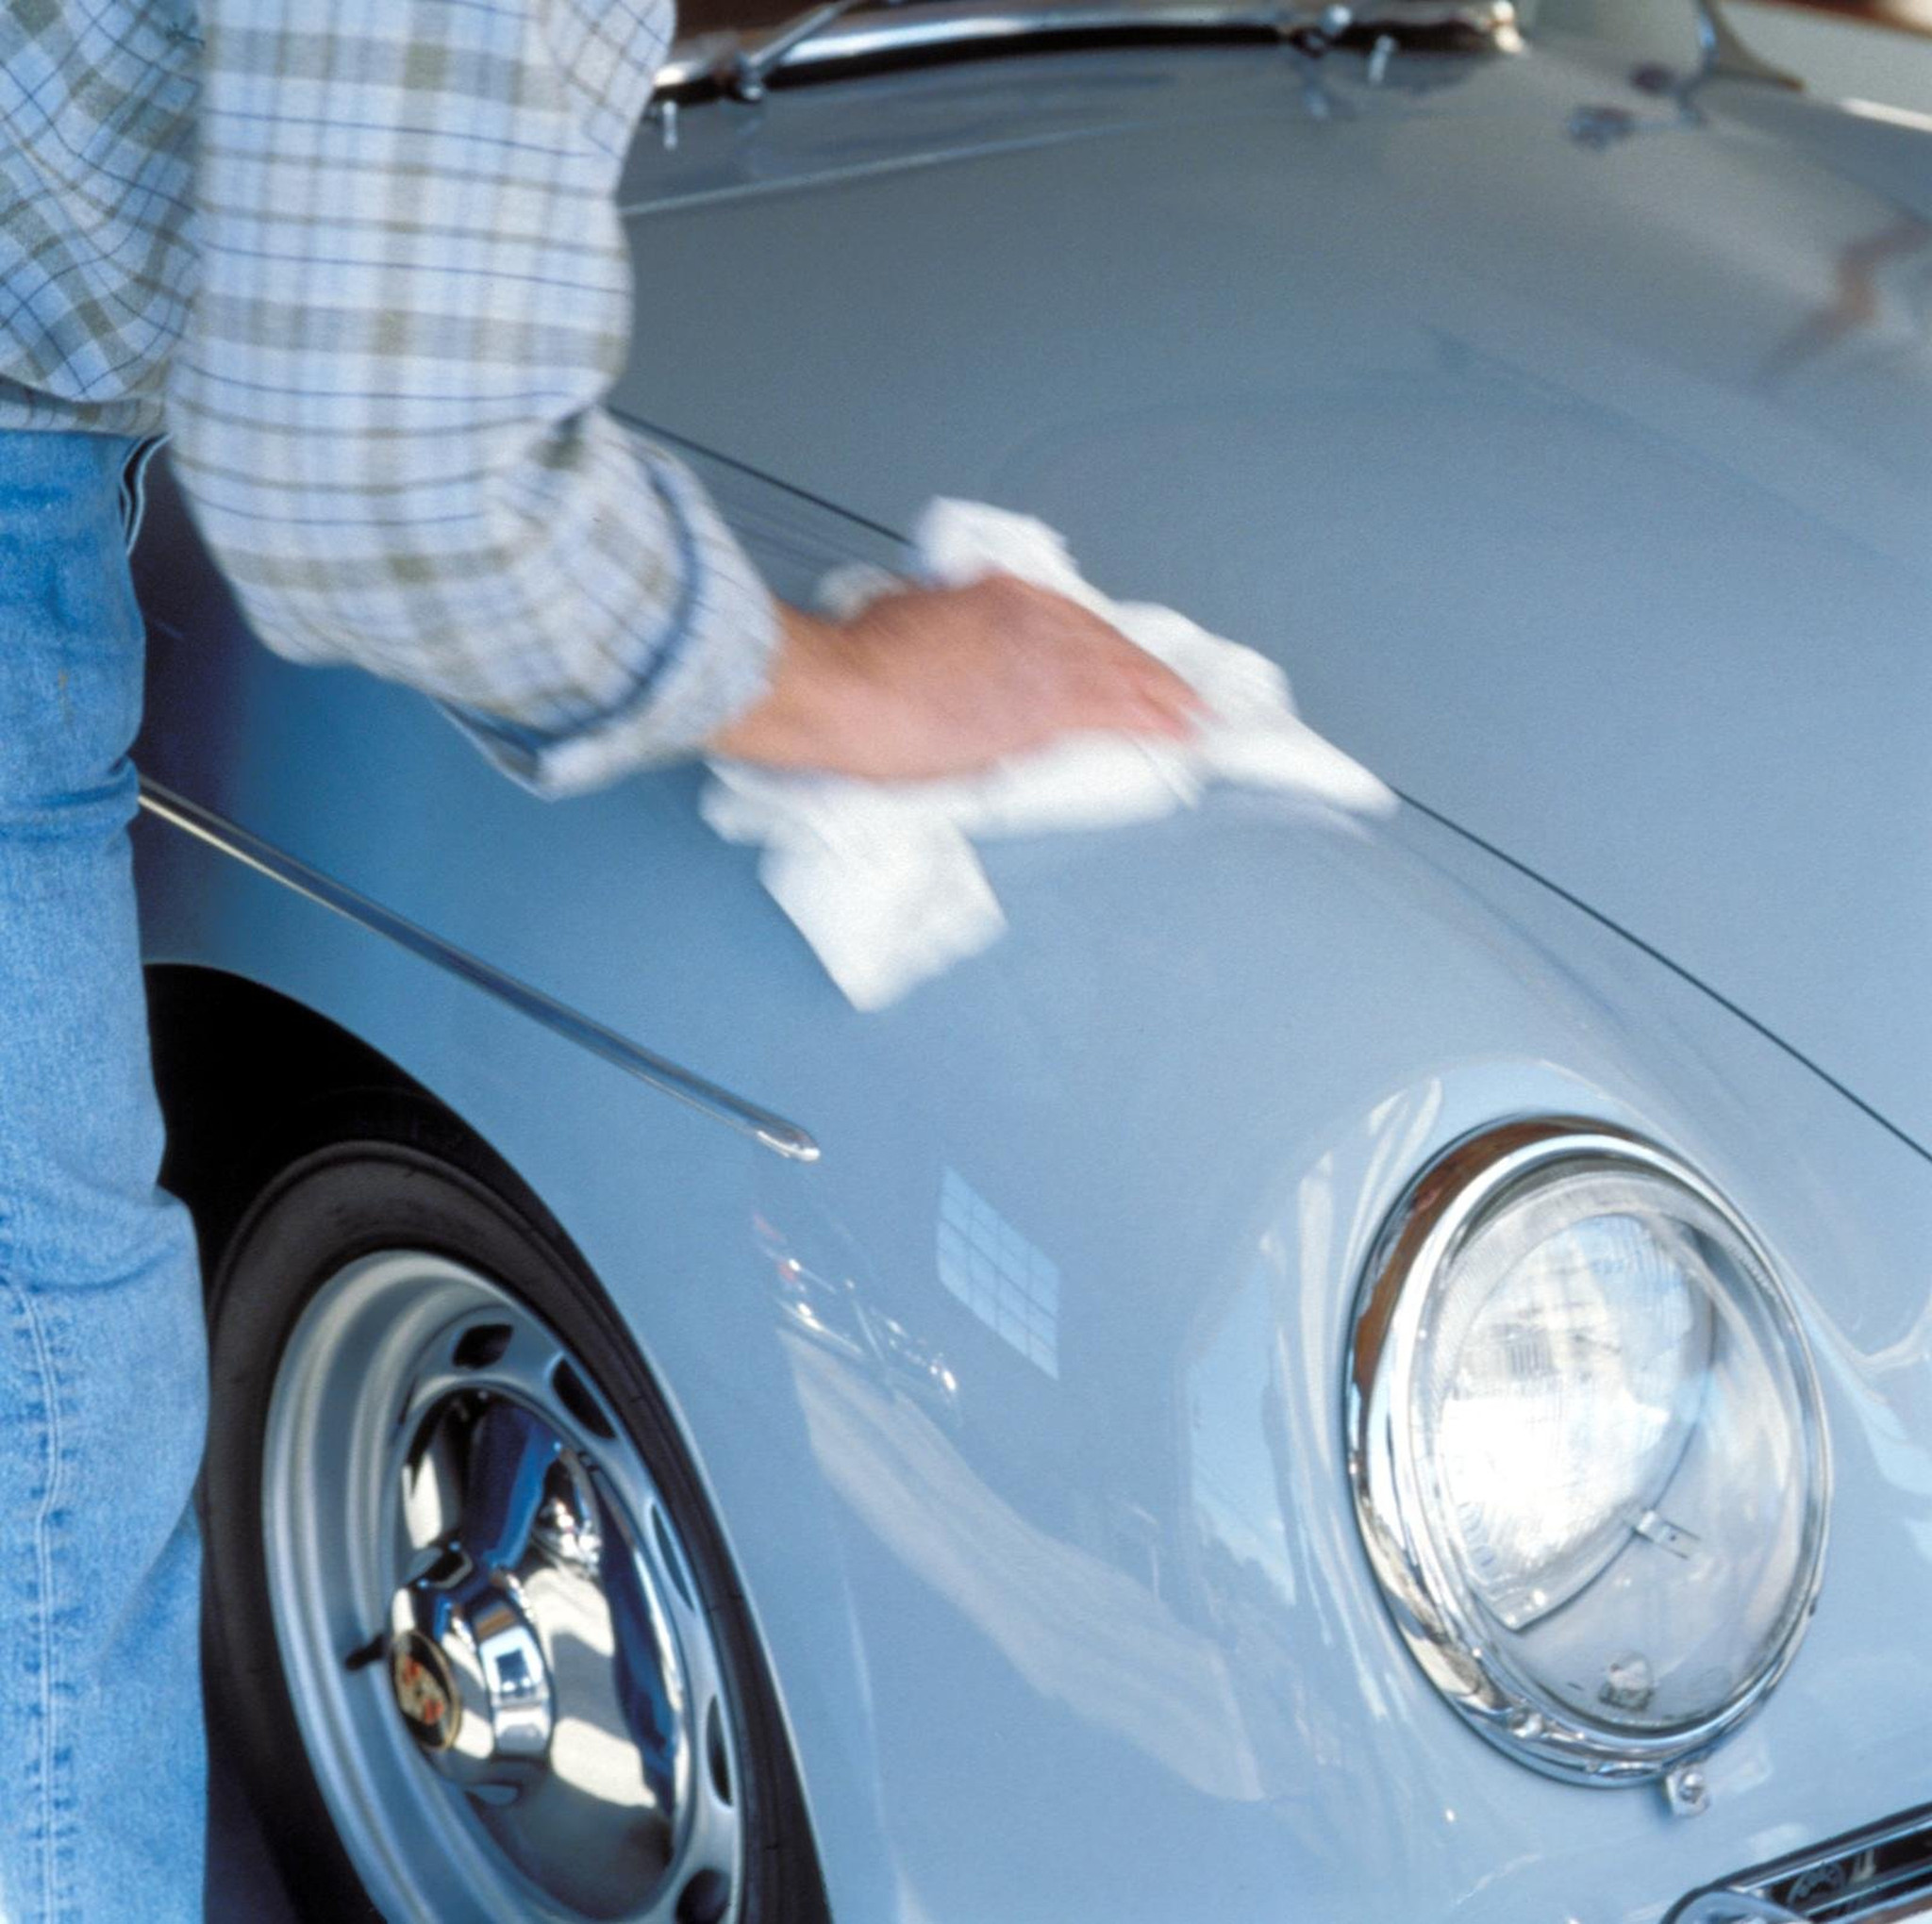 How To Avoid Water Spots When Washing Car